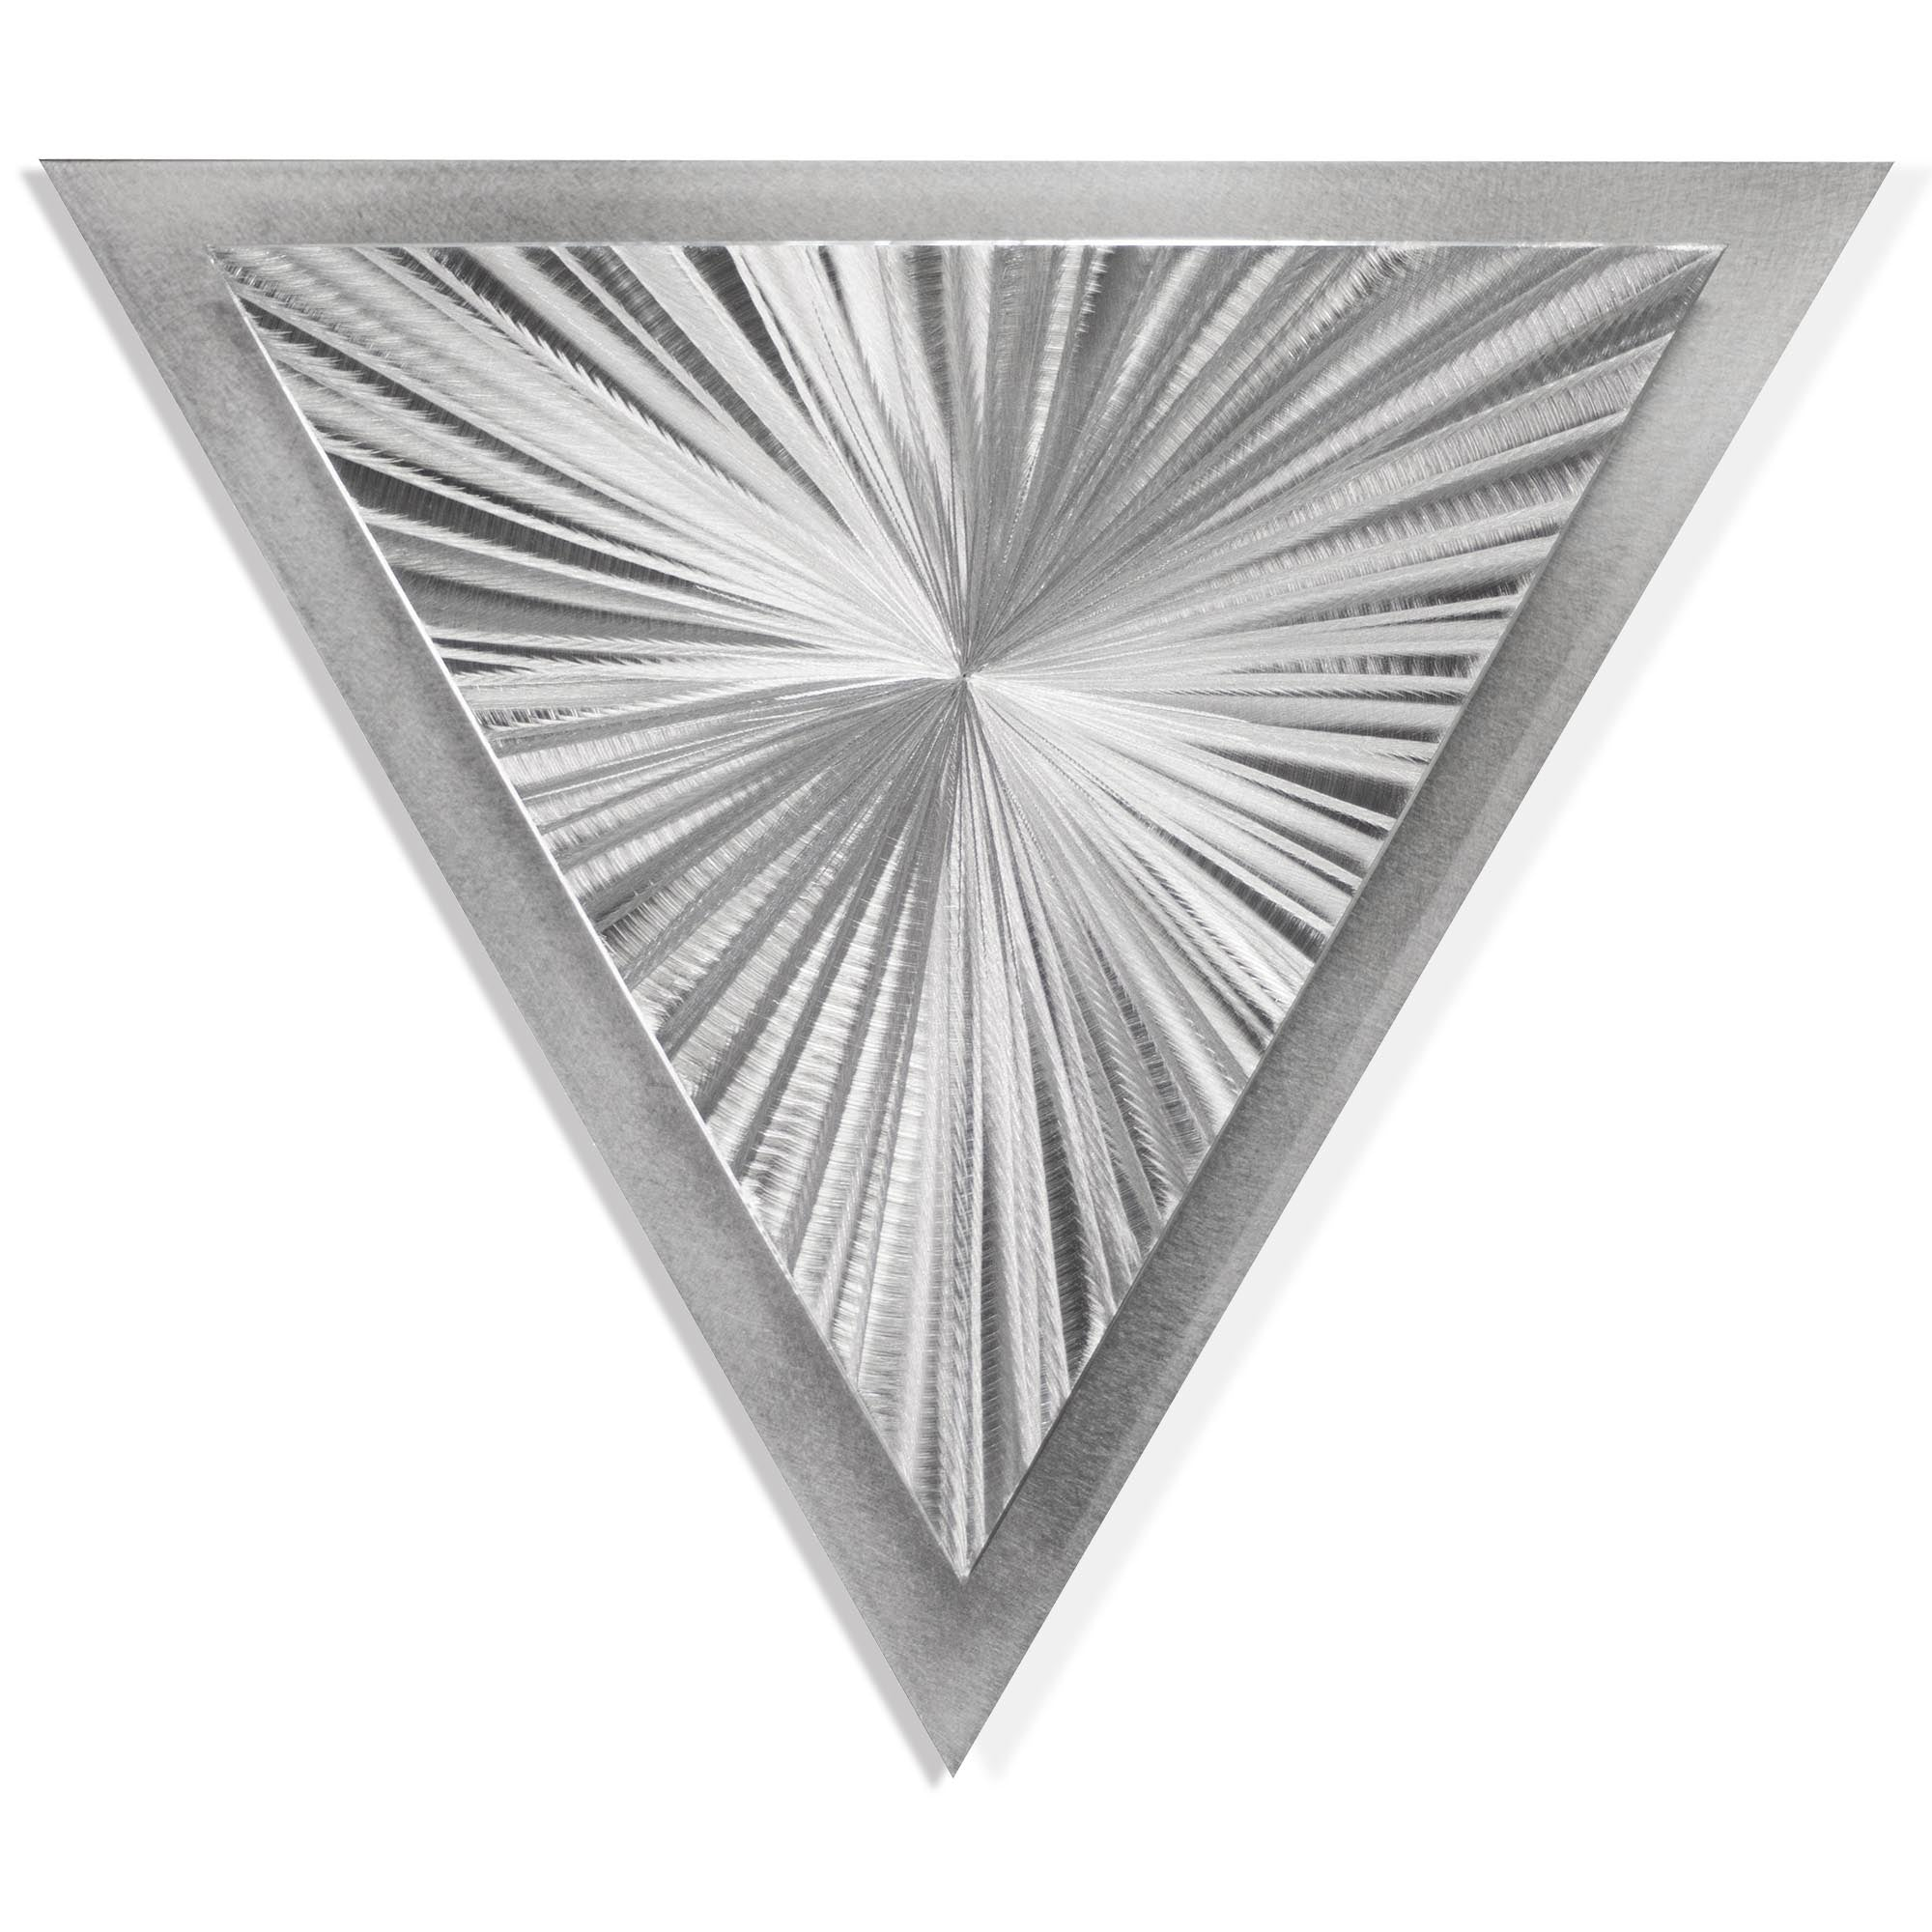 Starburst Angle by Helena Martin - Modern Metal Art on Ground Metal